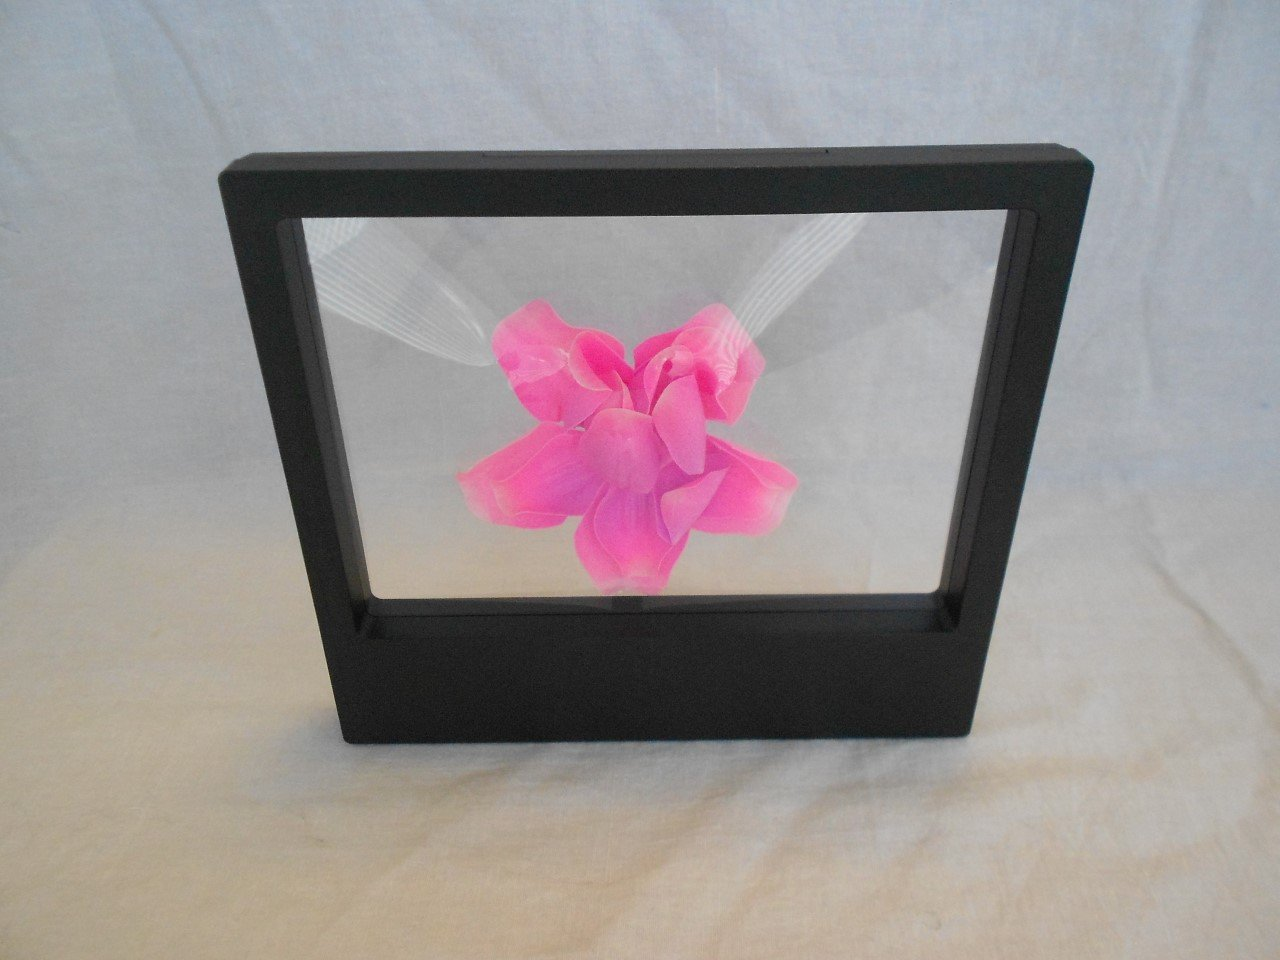 3D Display Floating Frame, Display Case, Shadow Box, Excellent for Jewelry, Shells, Stones, Coins, Flowers Collected (Big, Black) JD PRIME